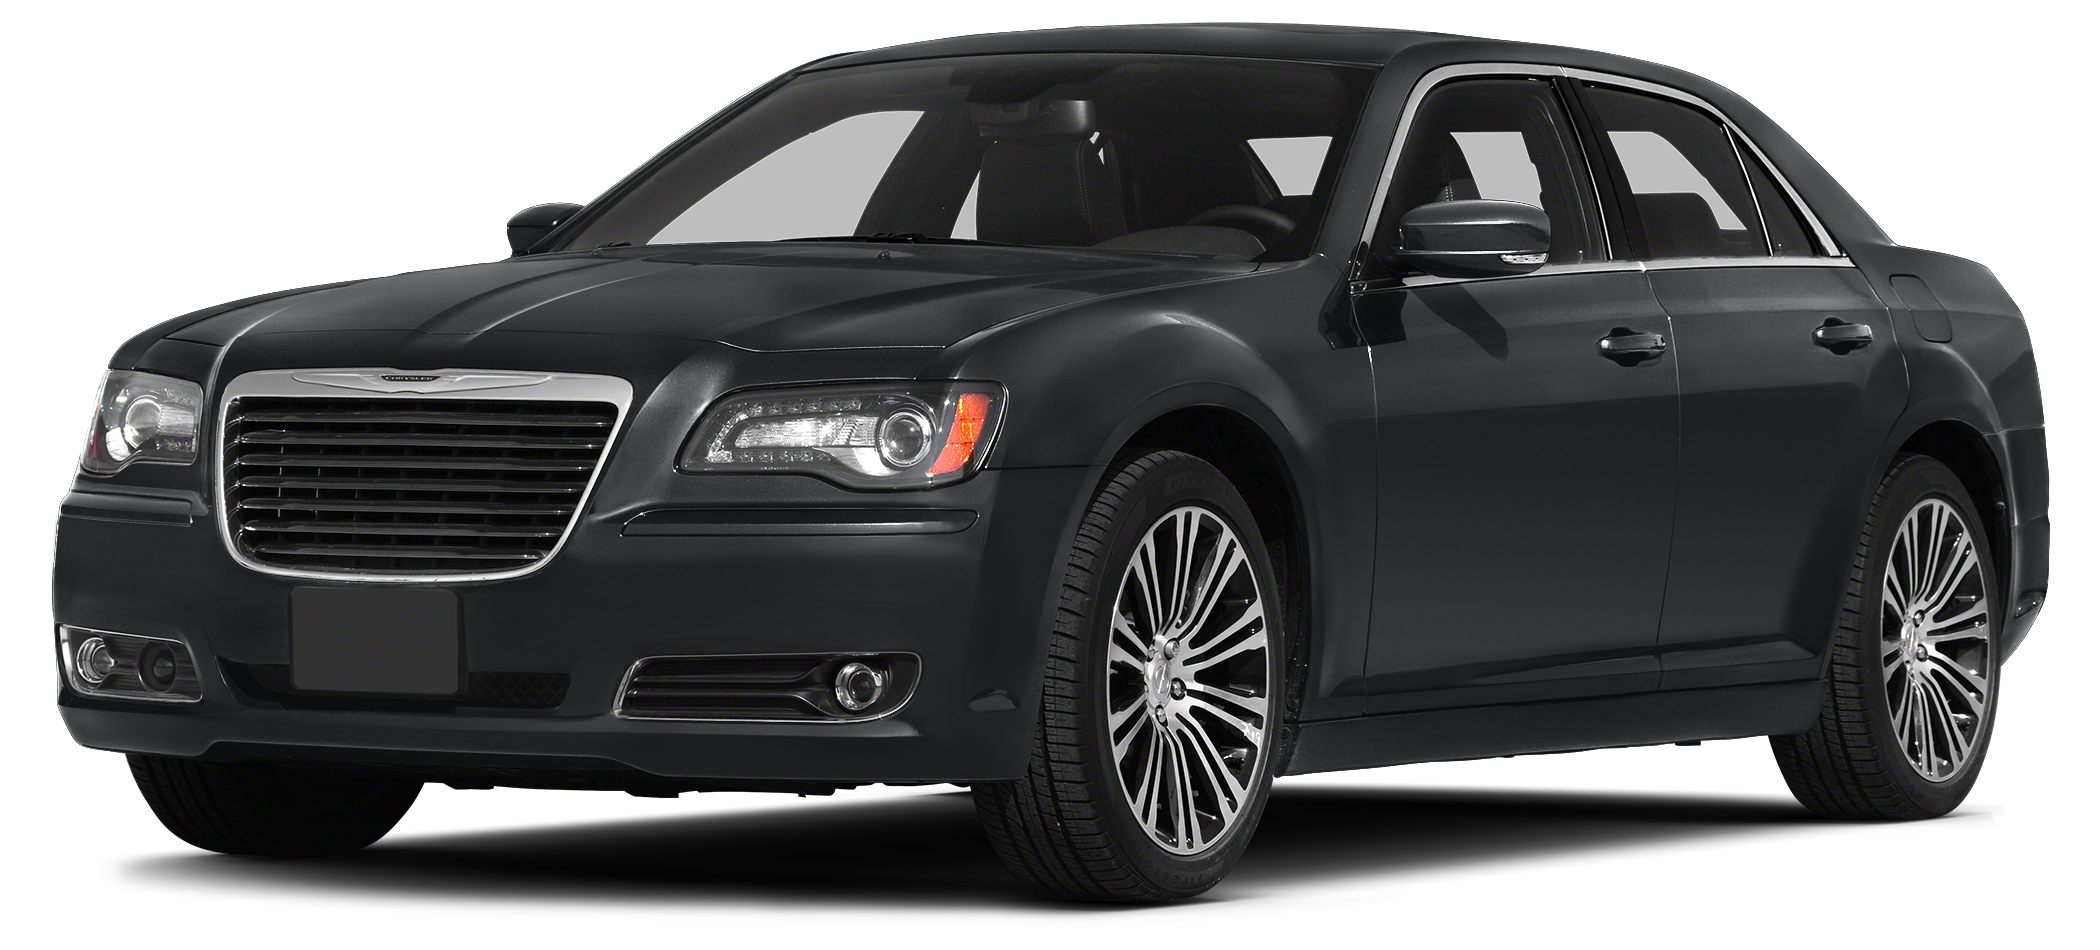 2014 Chrysler 300 S DISCLAIMER We are excited to offer this vehicle to you but it is currently in